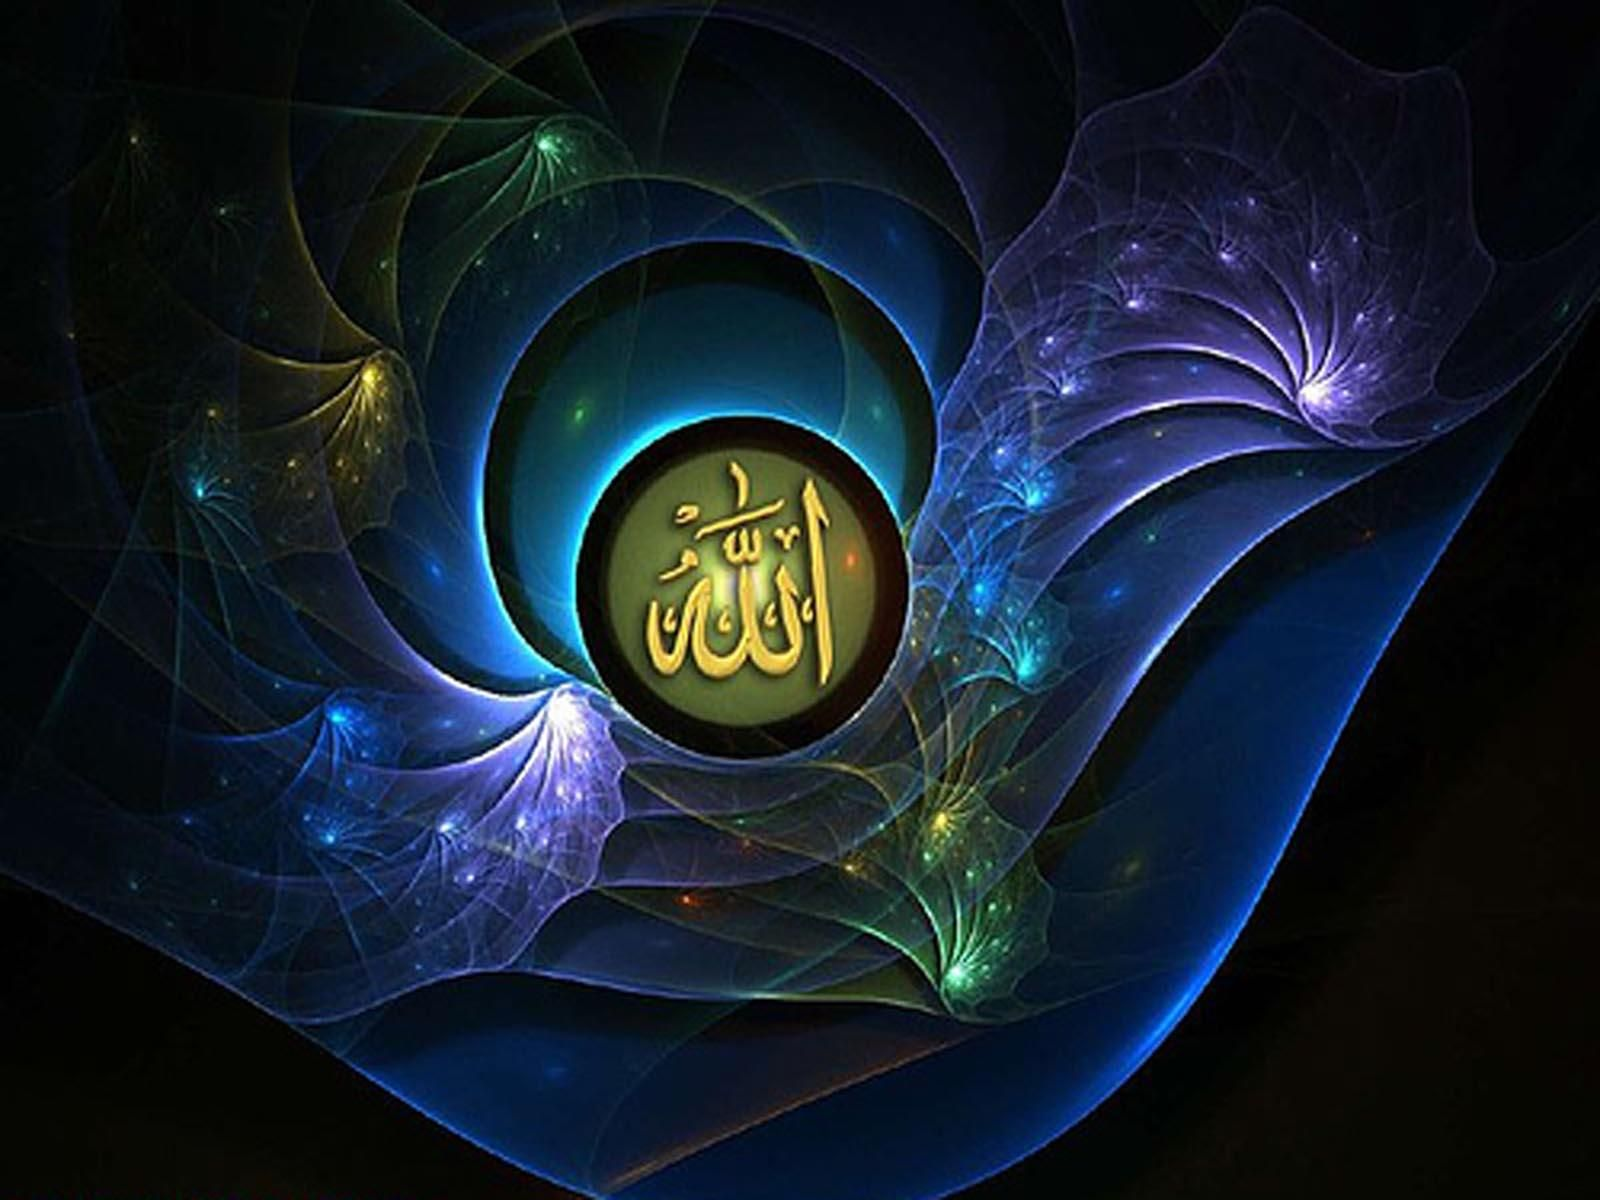 allah wallpaper 1602a—1202 allah pic wallpapers 53 wallpapers adorable wallpapers